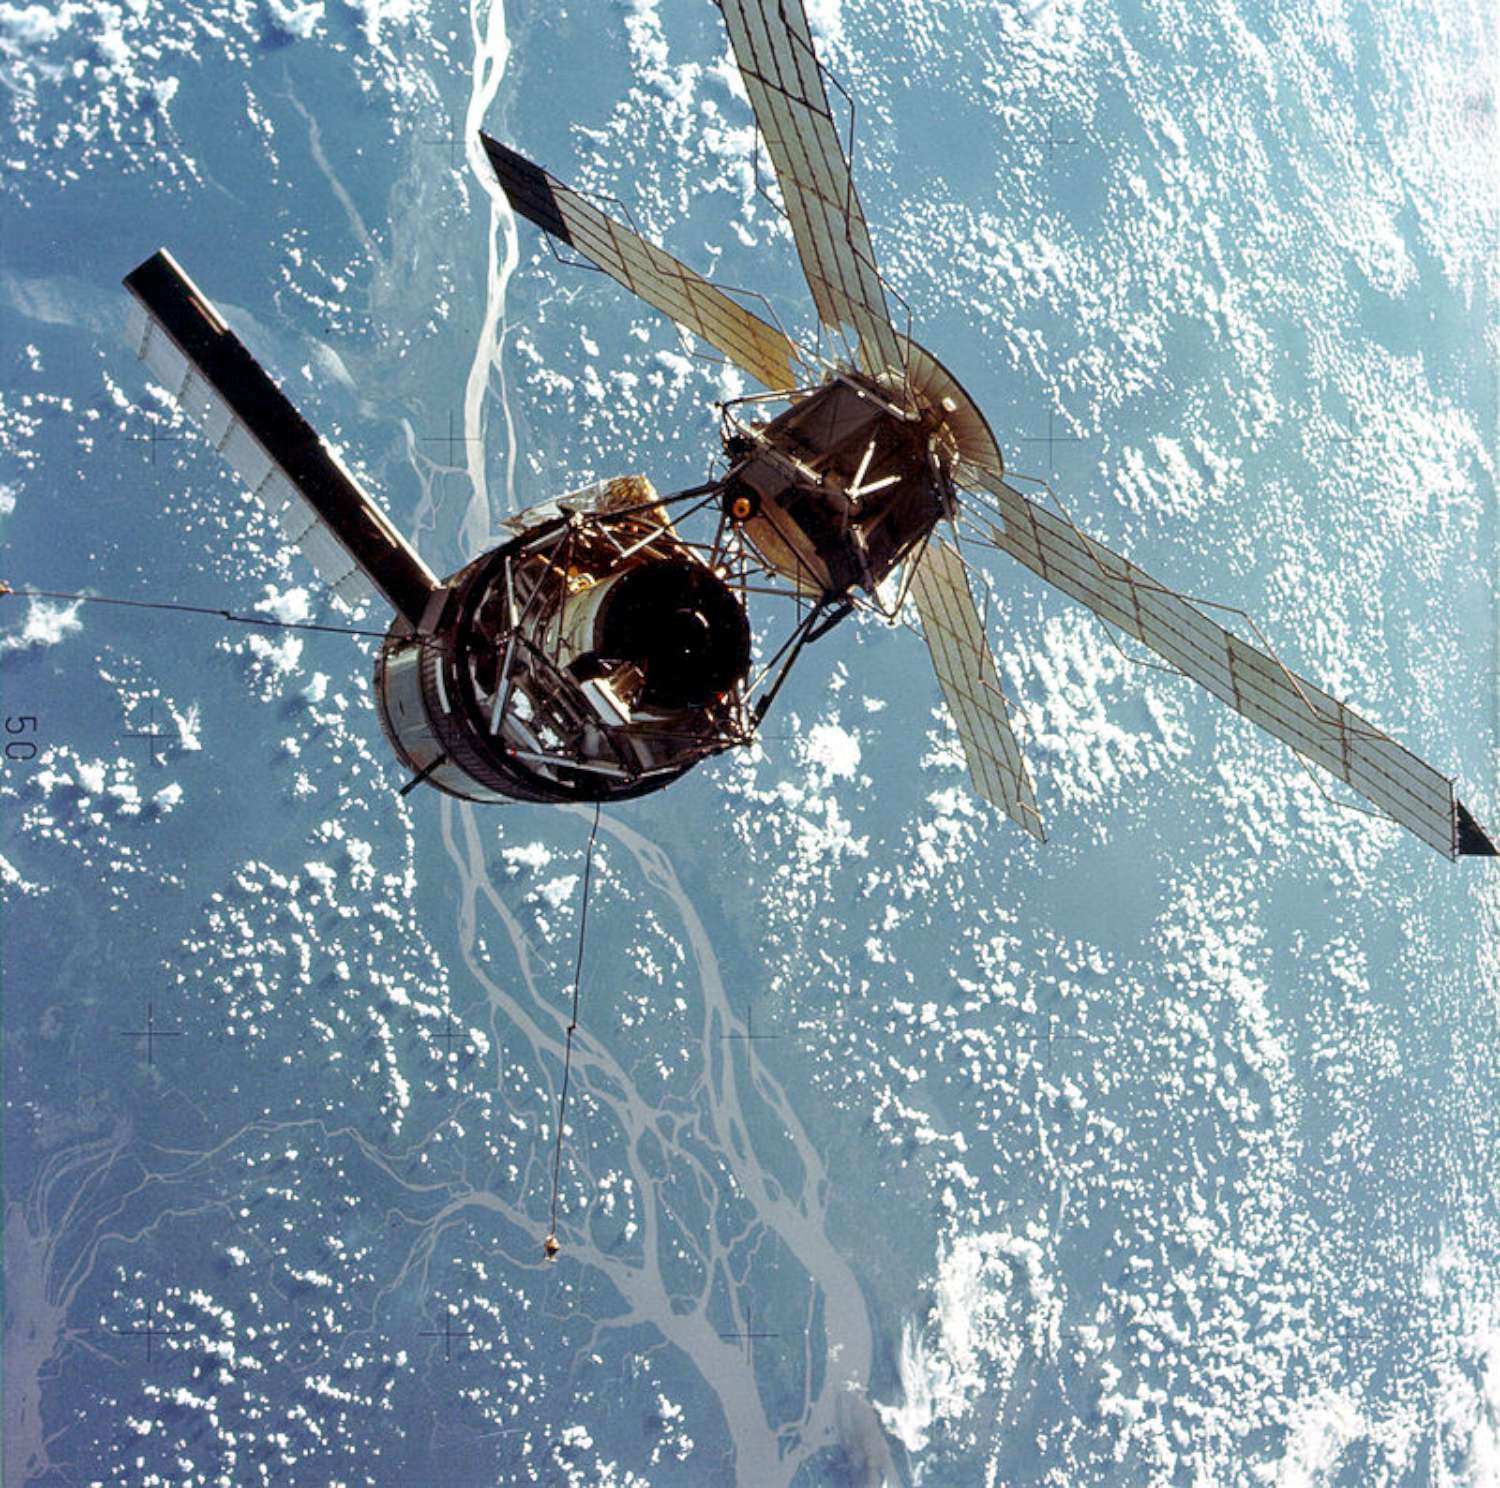 Skylab 3, image courtesy of NASA